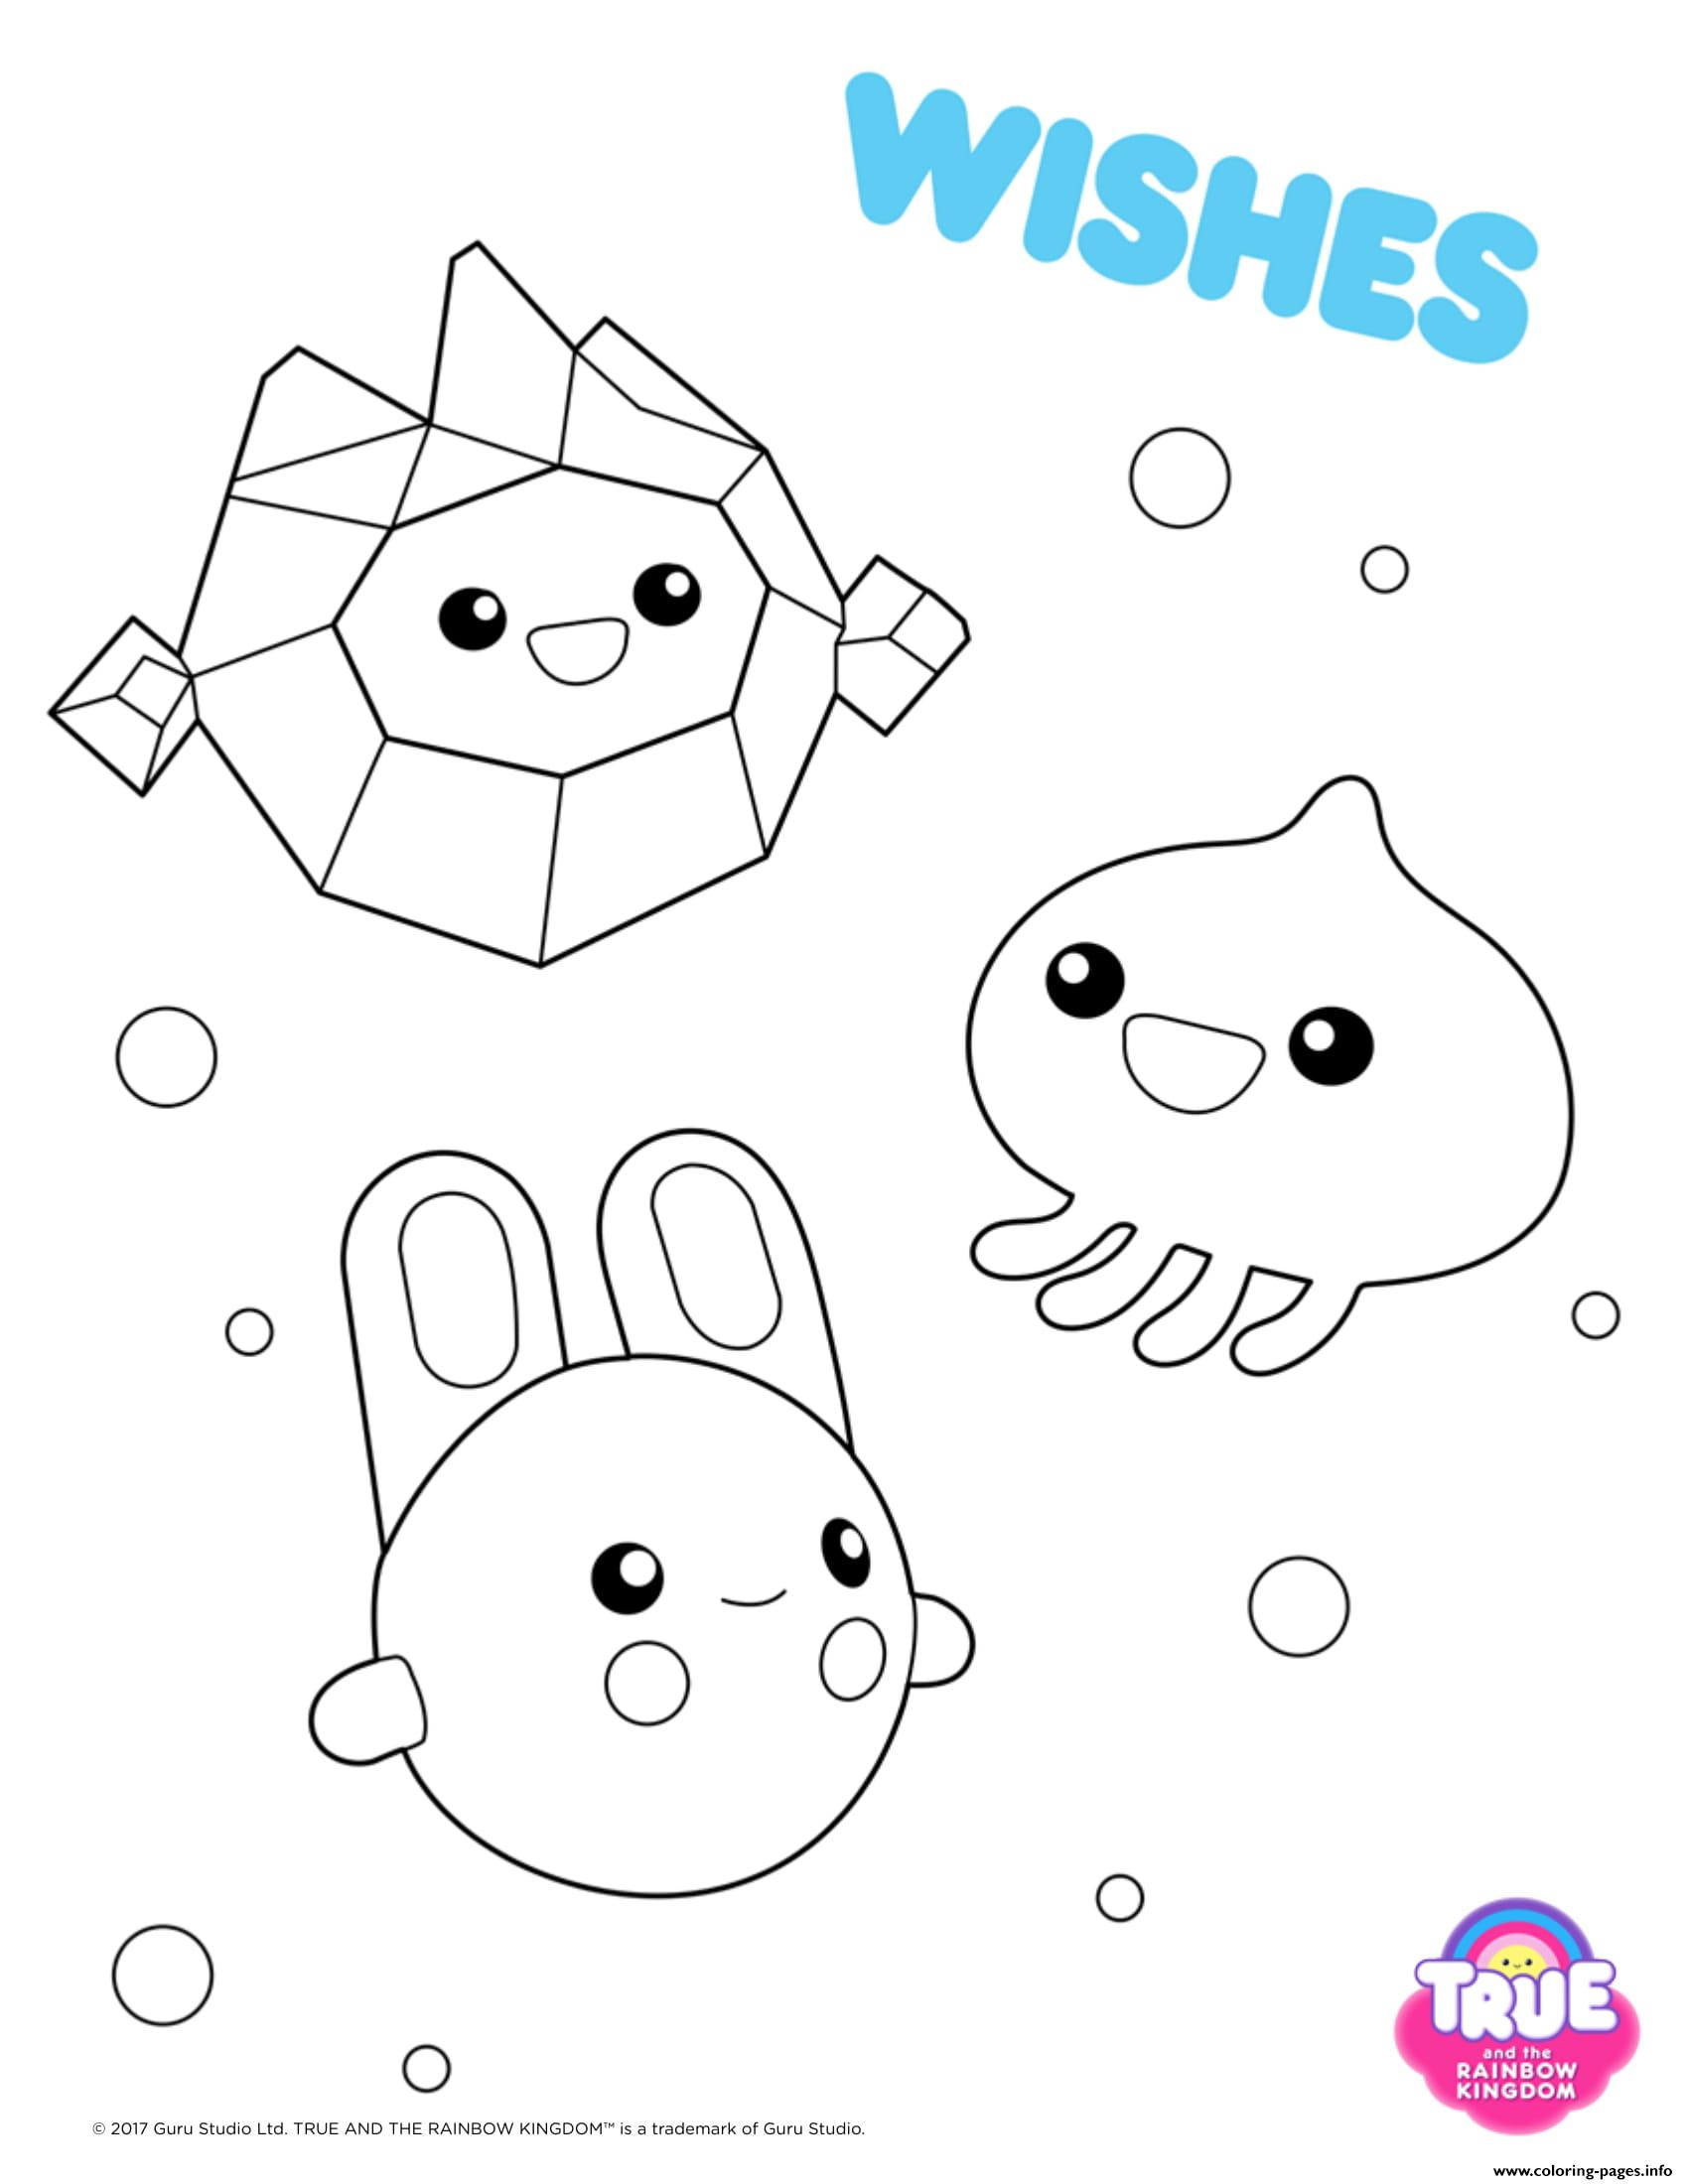 true and the rainbow kingdom coloring pages wishes 1 true and the rainbow kingdom coloring pages printable